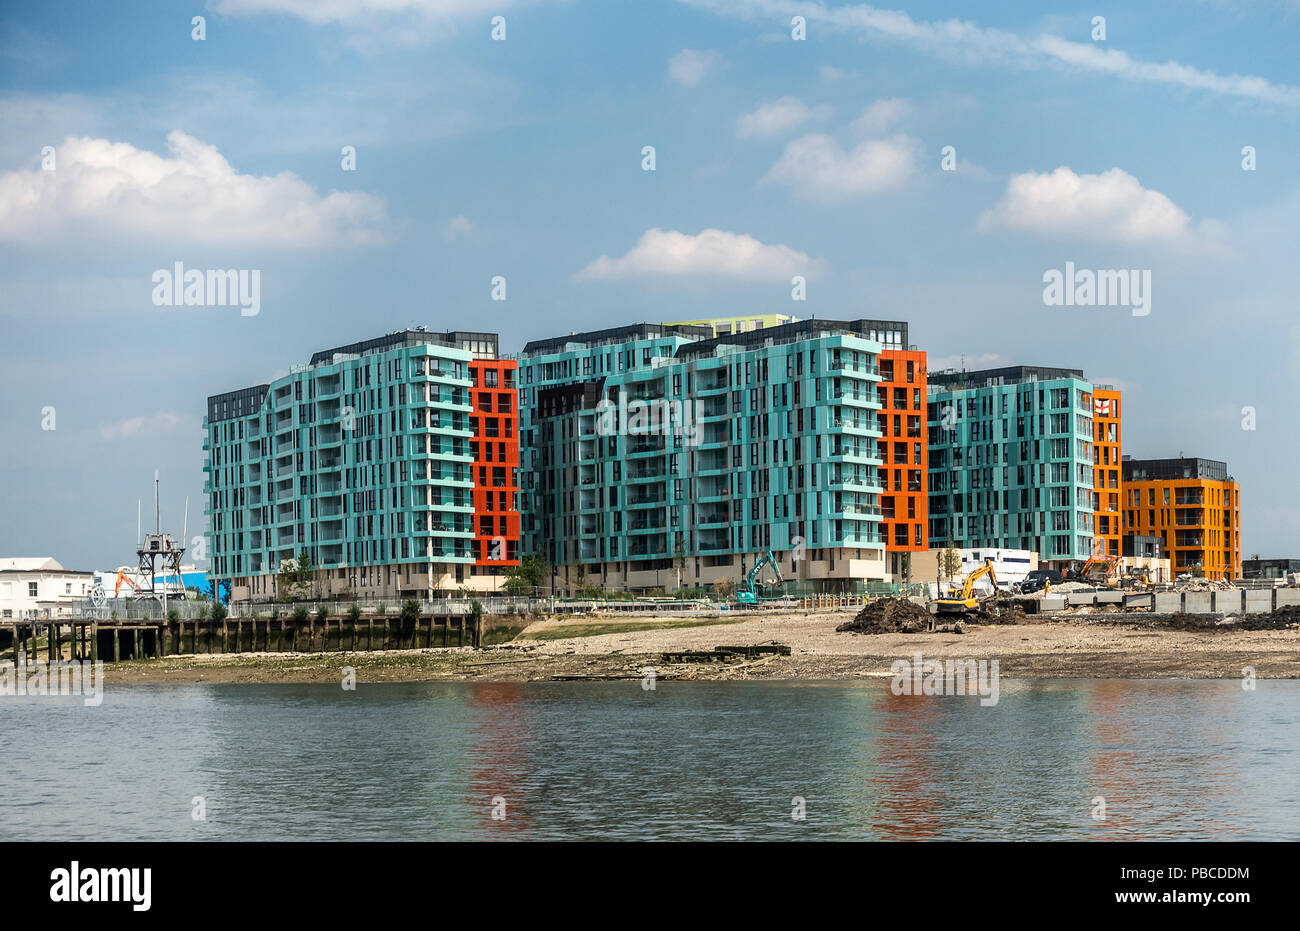 New blocks of flats with balconies on the side of the River Thames near Morden Wharf, Greenwich peninsula, London. Construction work going on. - Stock Image